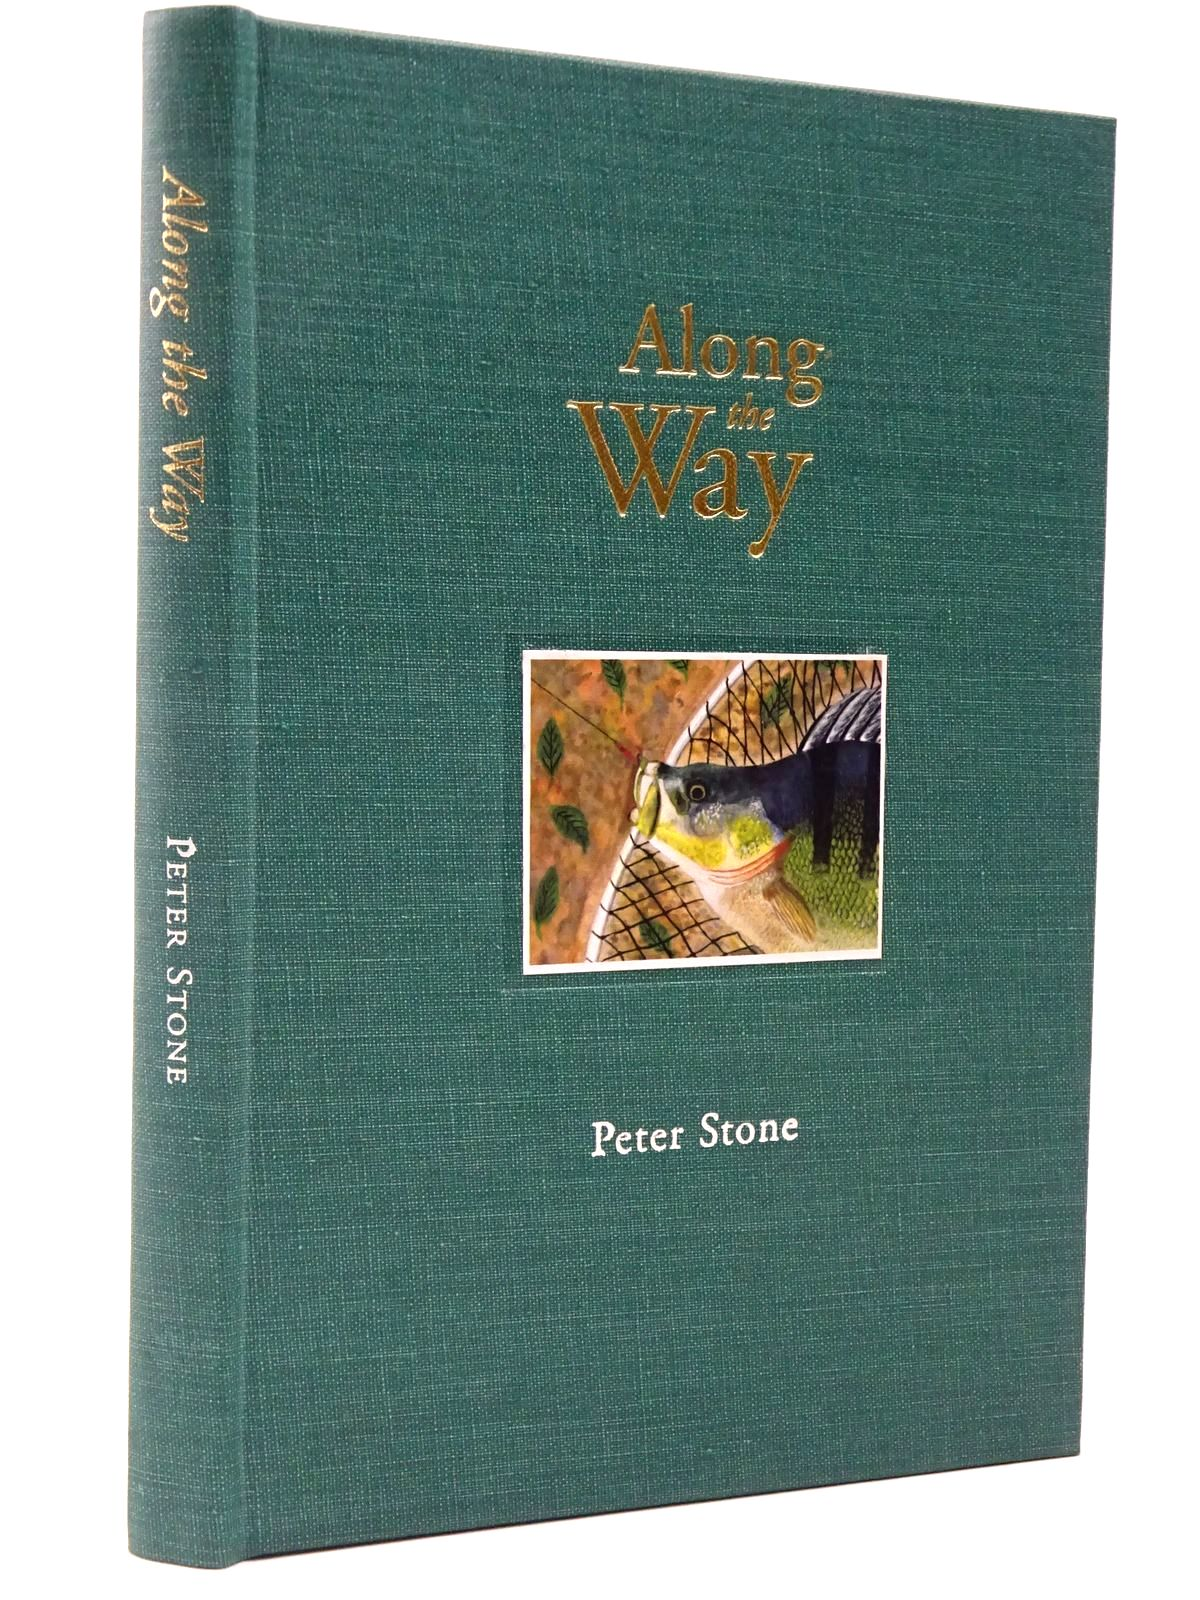 Photo of ALONG THE WAY written by Stone, Peter illustrated by Stone, Peter published by The Medlar Press (STOCK CODE: 2129511)  for sale by Stella & Rose's Books